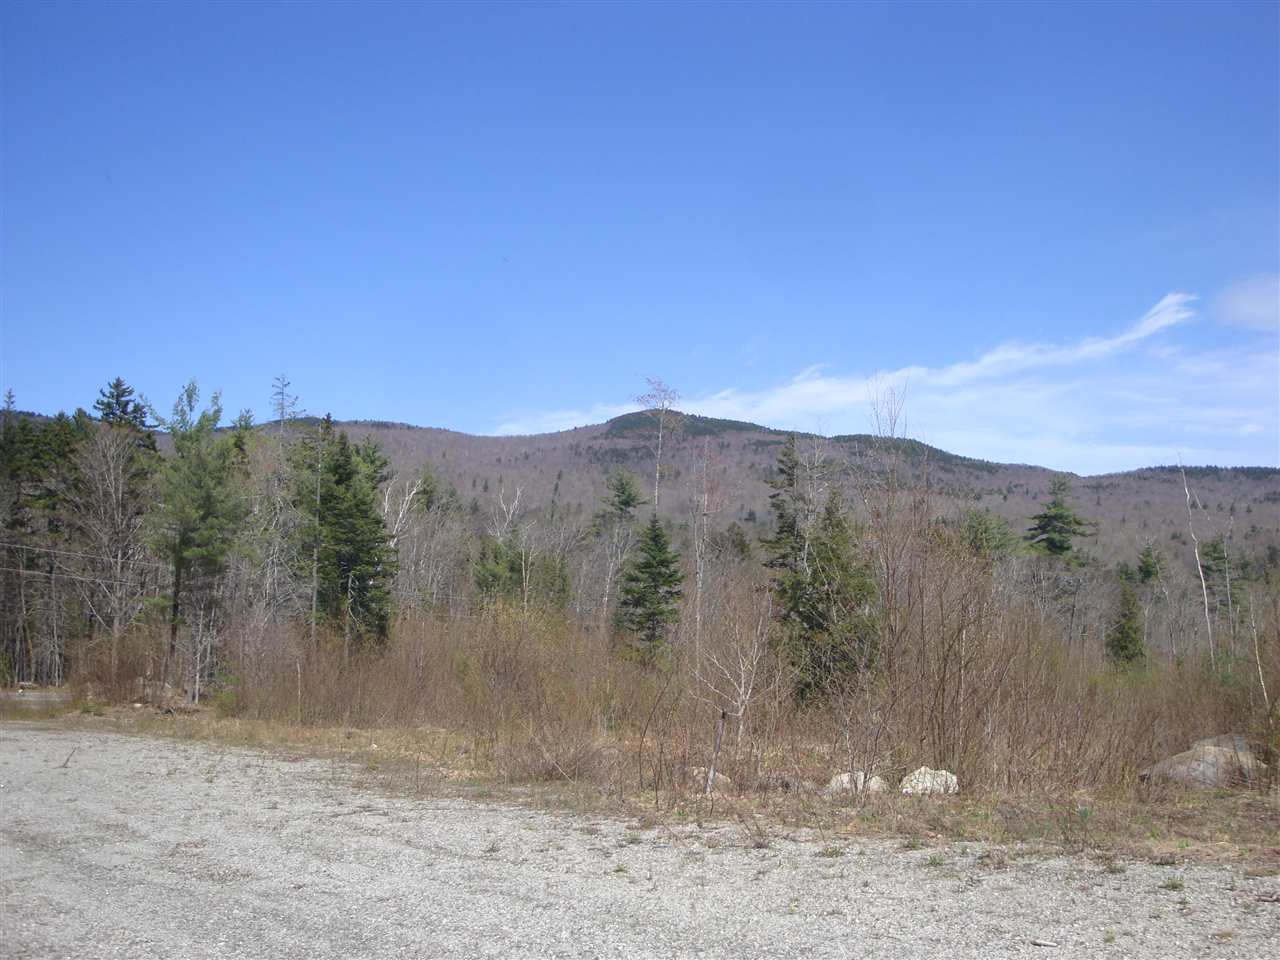 MLS 4805505: Lots 3 & 4 Old Fields Road, Groton NH